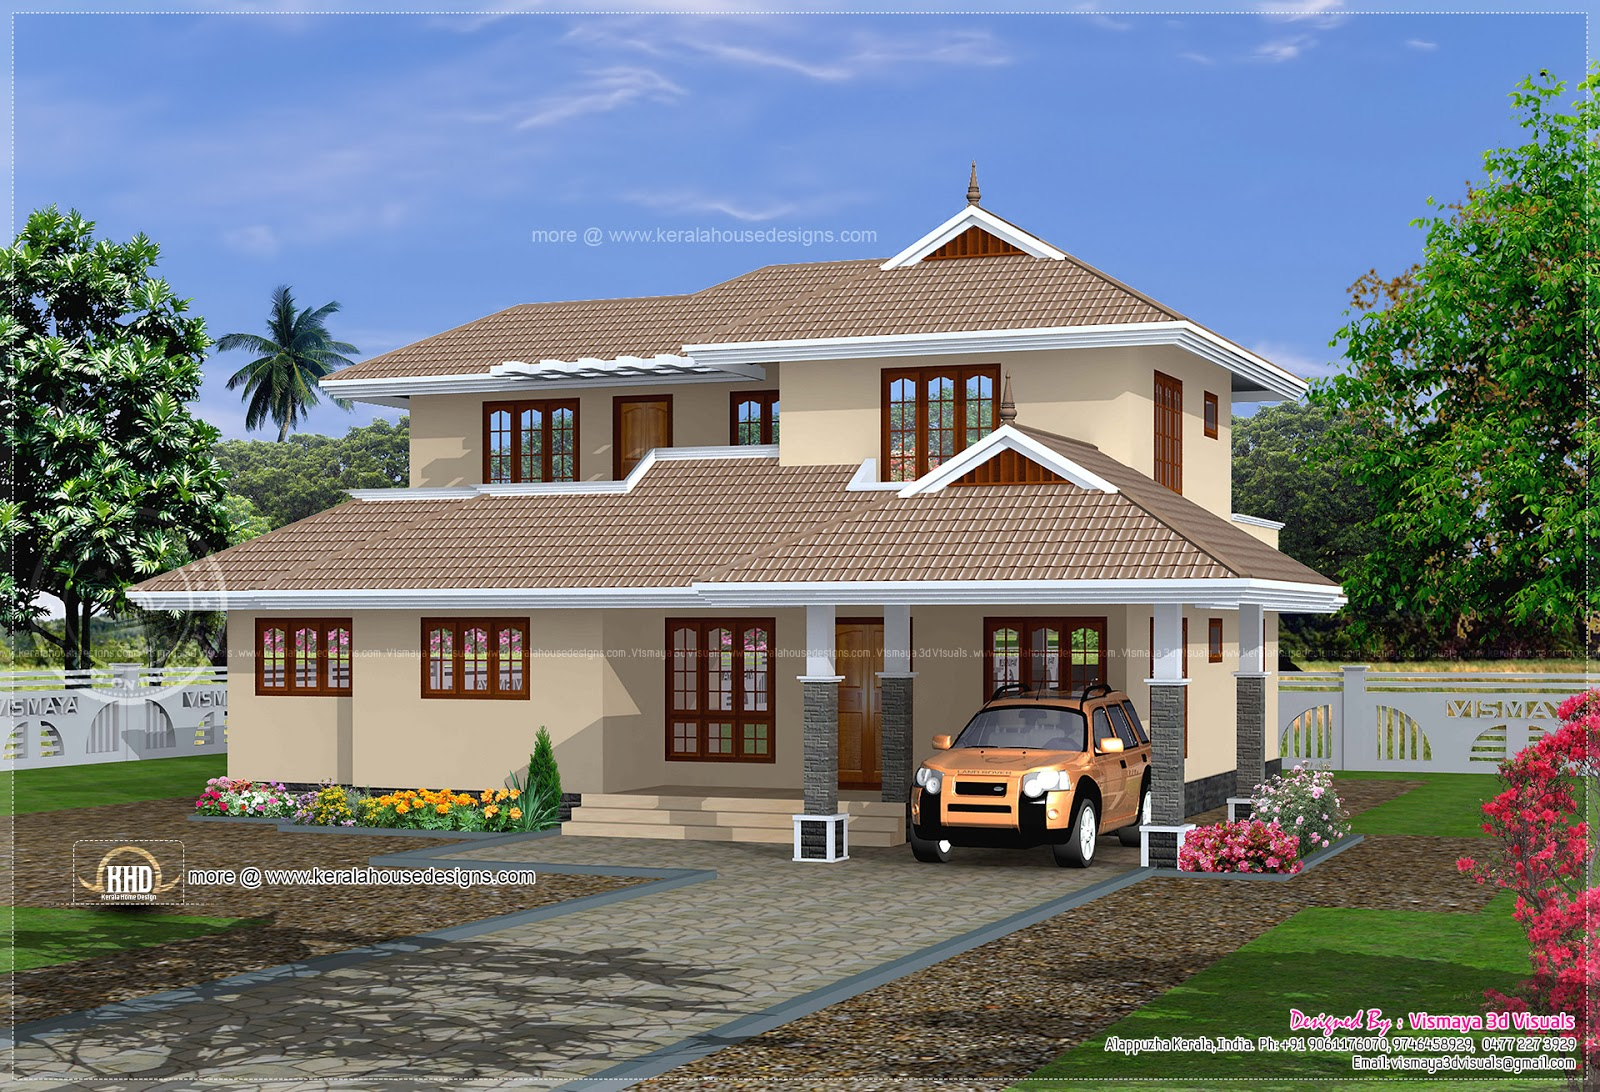 February 2014 house design plans for Basic house design